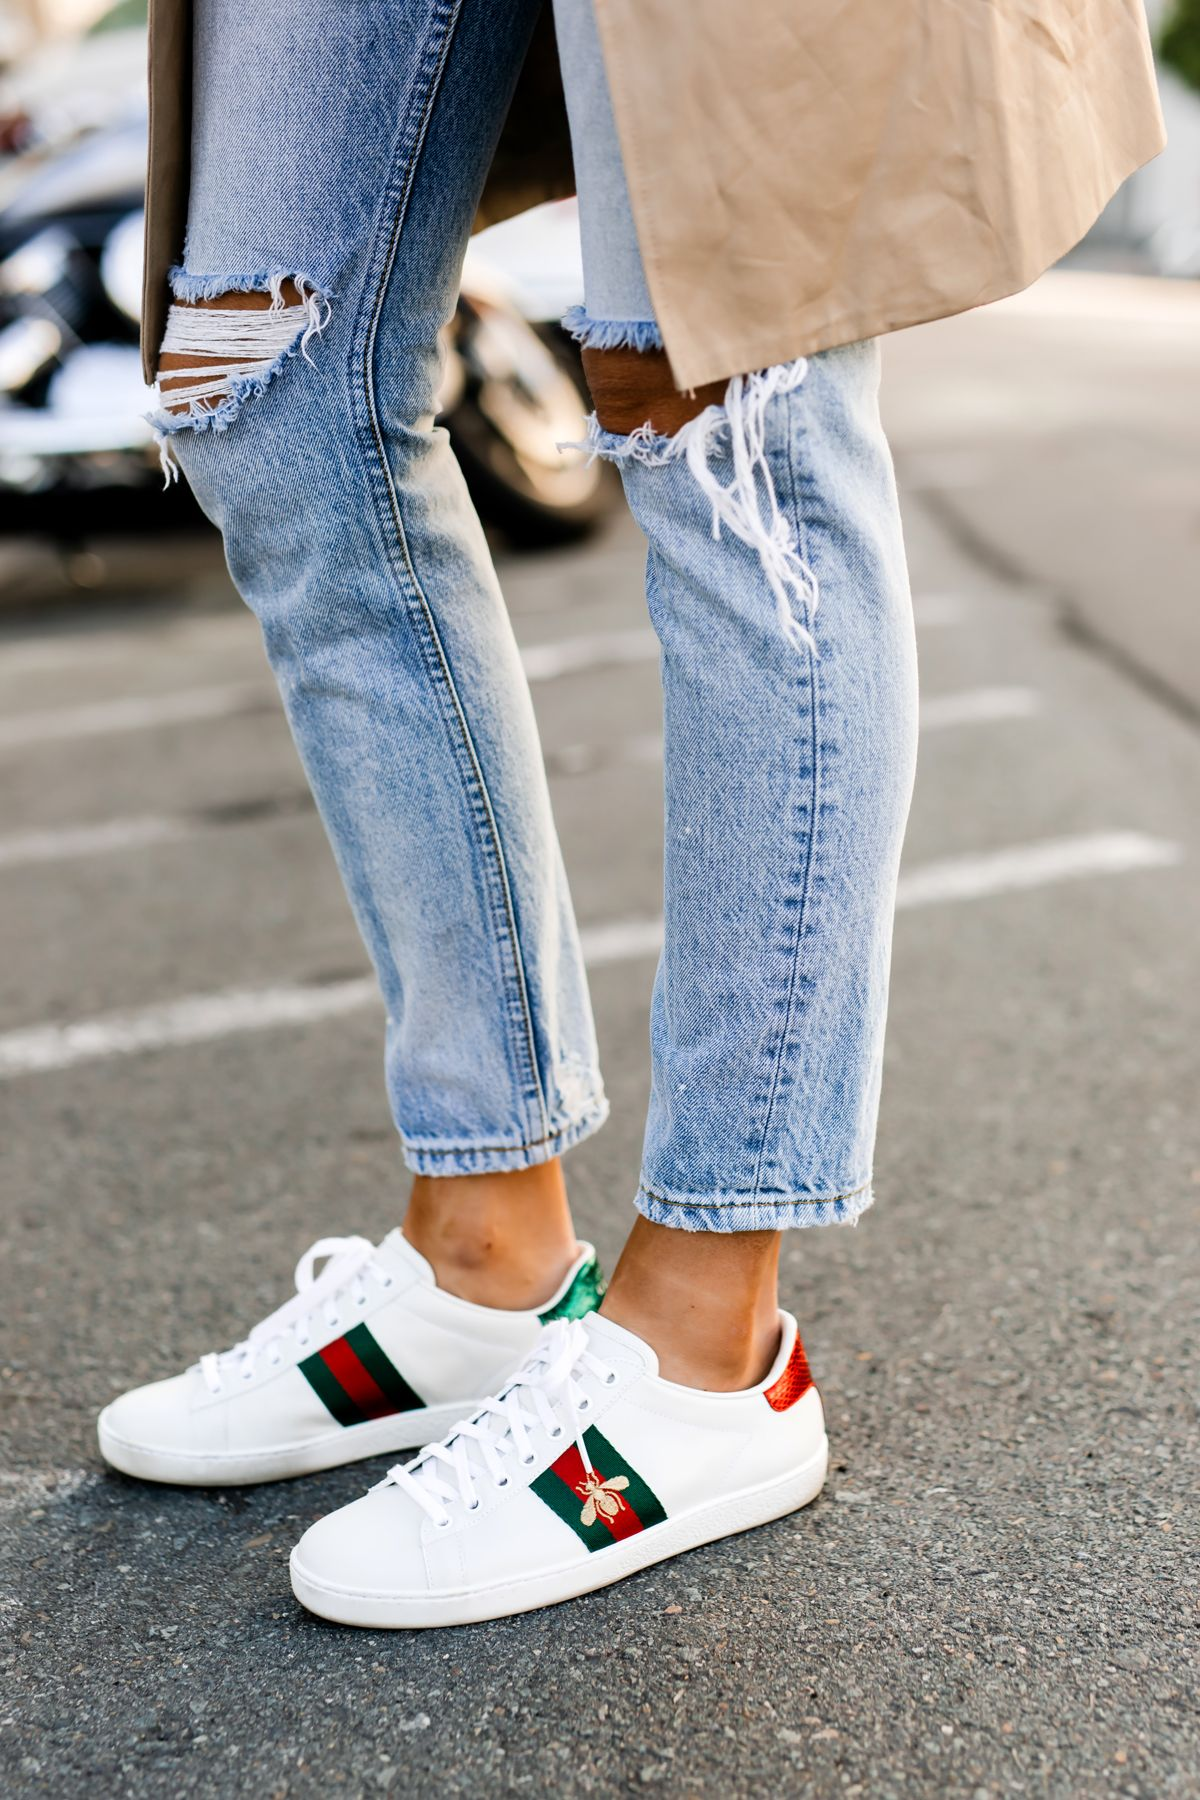 Fashion Jackson Honest Review of Gucci Ace Embroidered Sneakers 7